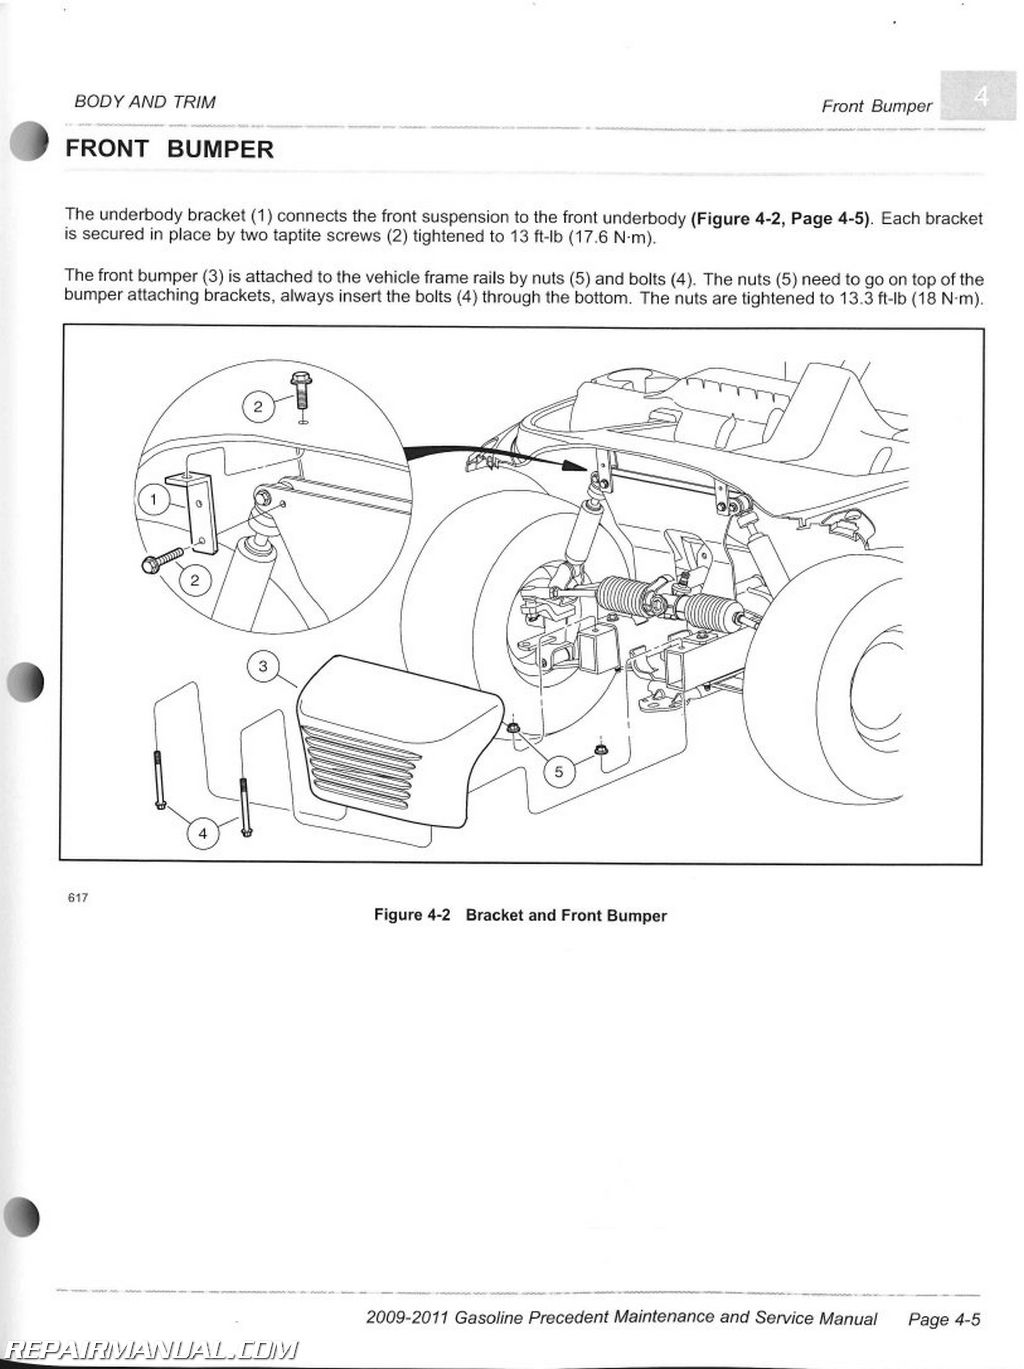 Club Car Golf Cart Lights Wiring Diagram - Schematic Liry Electric Club Car Golf Cart Wiring Diagram Lights on 86 club car wiring diagram, 97 club car wiring diagram, club car golf cart front suspension diagram, 85 club car wiring diagram, 1980 club car wiring diagram, club cart parts diagram, club car solenoid wiring diagram, club cart battery wiring diagram, electric club car problems, 1956 ford car wiring diagram, electric vehicle wiring harness, club car schematic diagram, 98 club car wiring diagram, 92 club car wiring diagram, electric club car parts diagram, club car 36 volt battery diagram, 1992 club car wiring diagram, 1994 club car wiring diagram, club car controller diagram, 1991 club car wiring diagram,